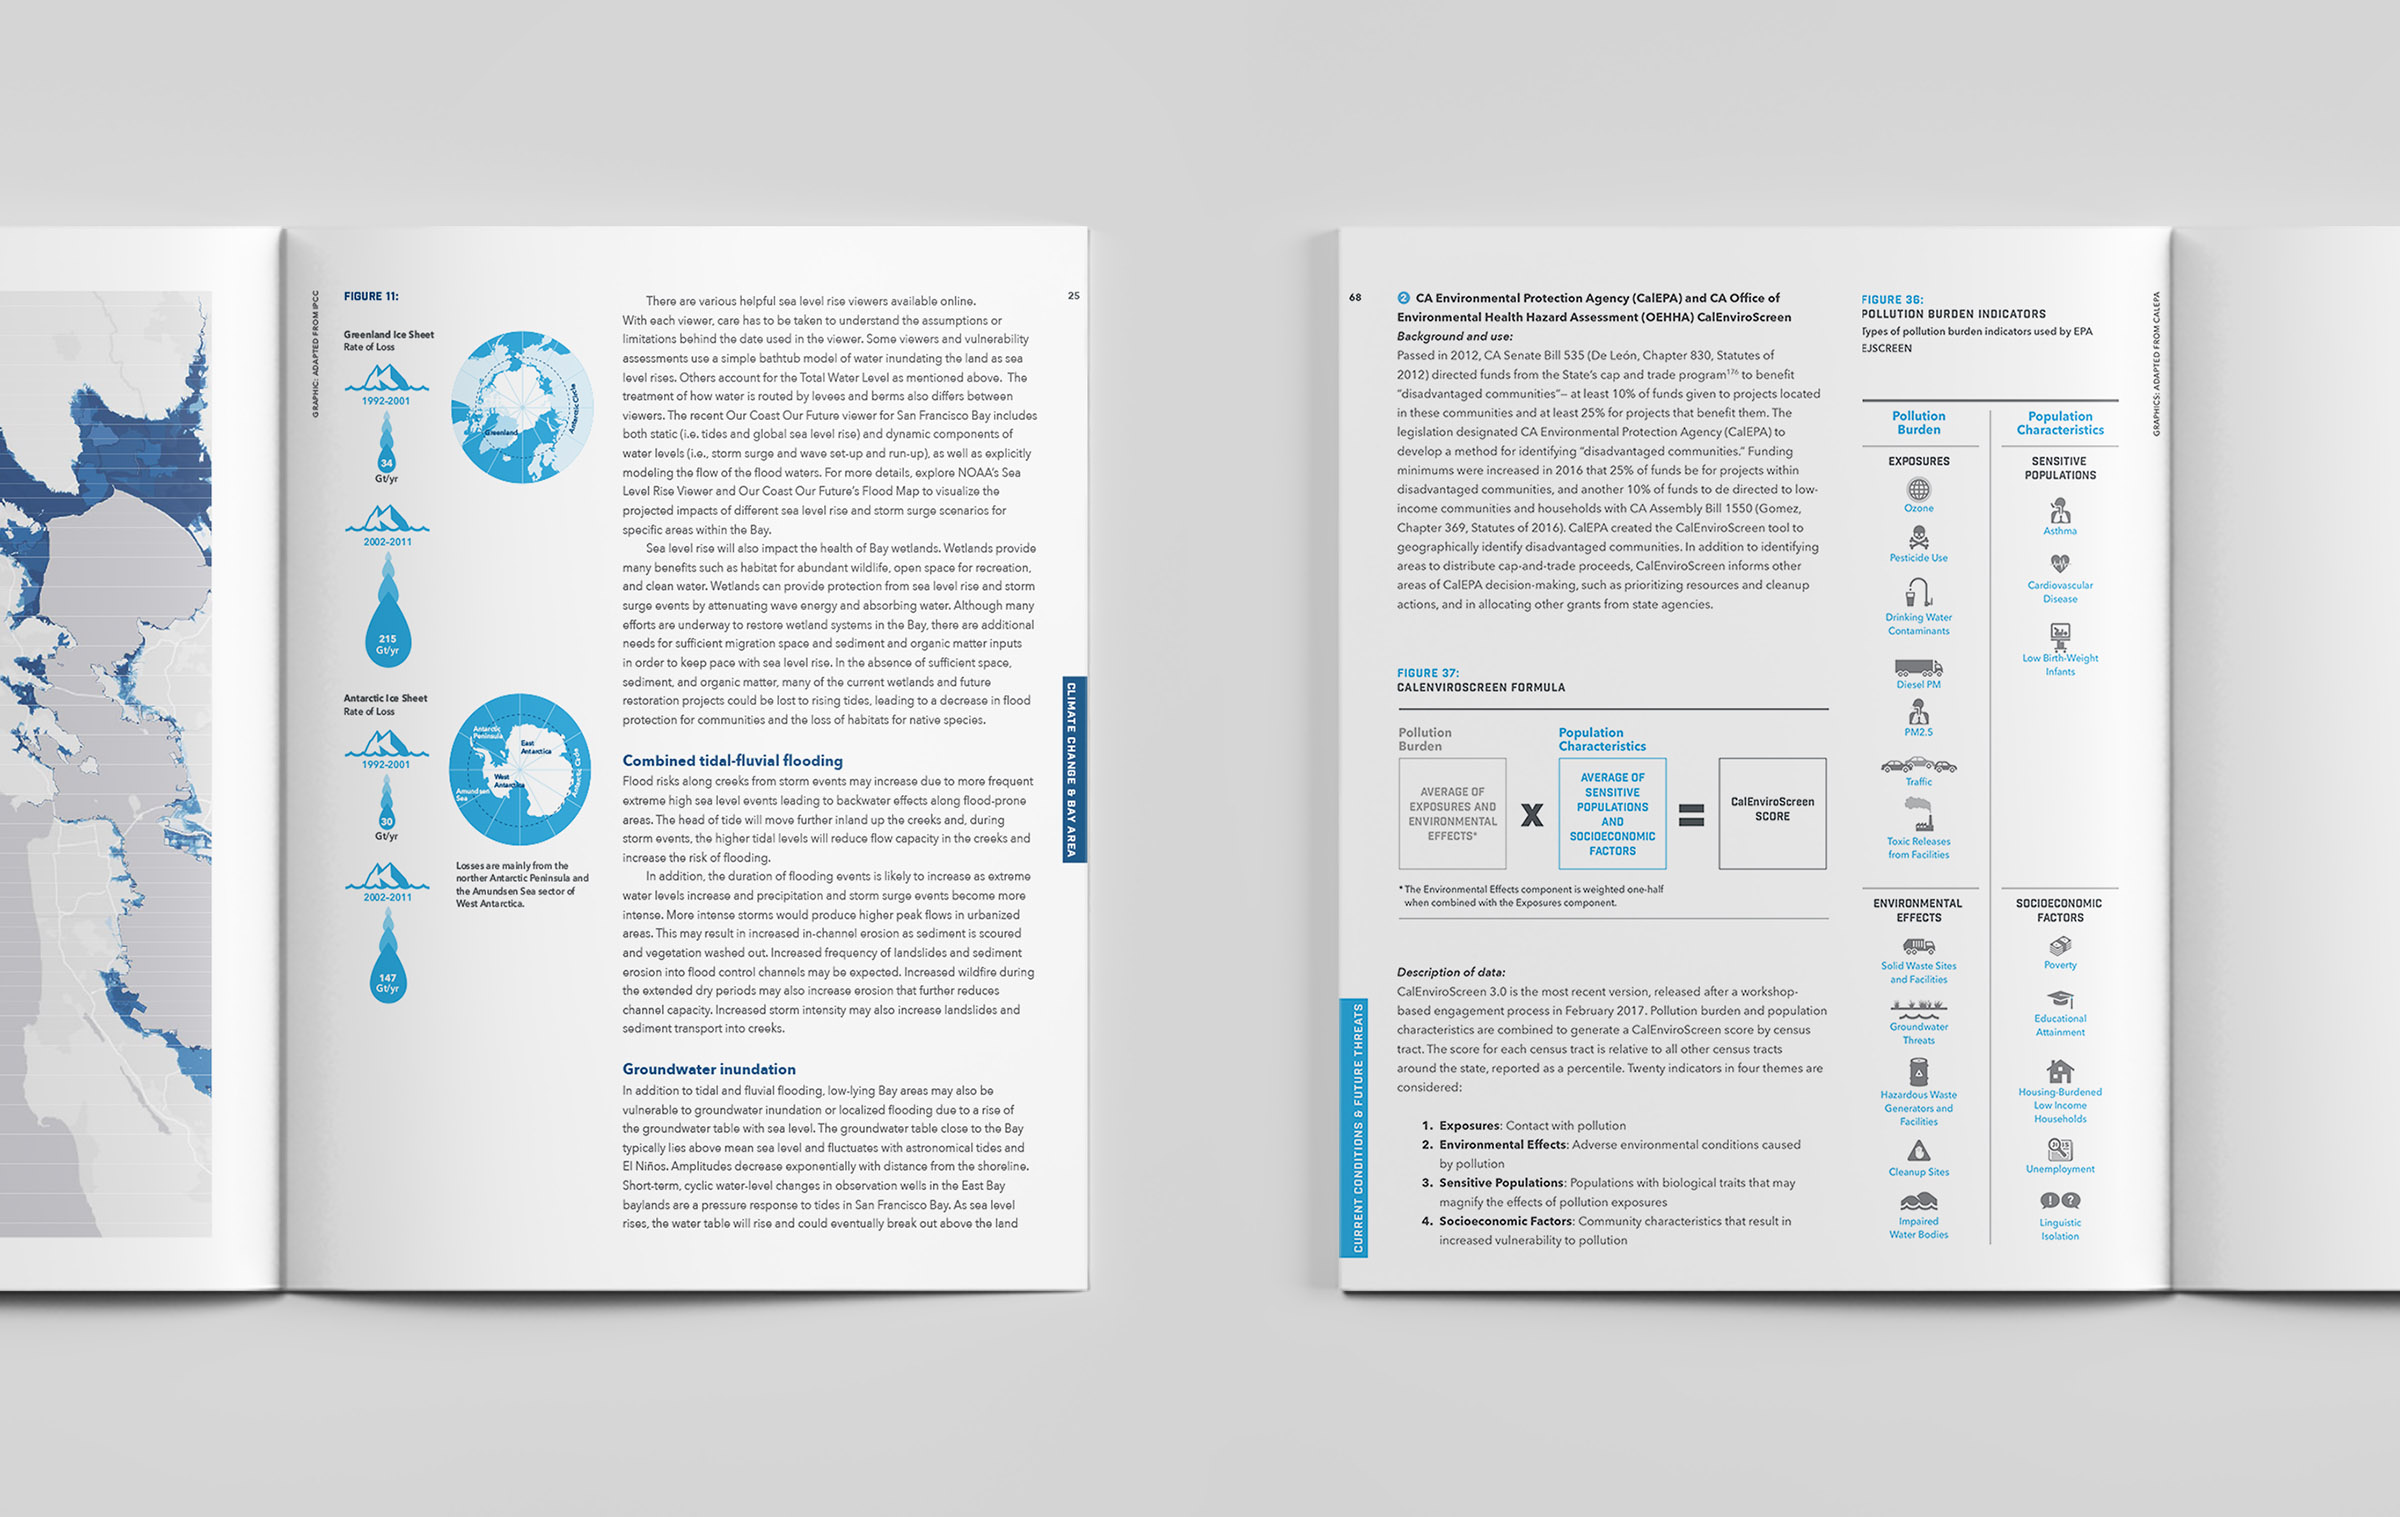 resilient-by-design-briefing-book-spread-combo